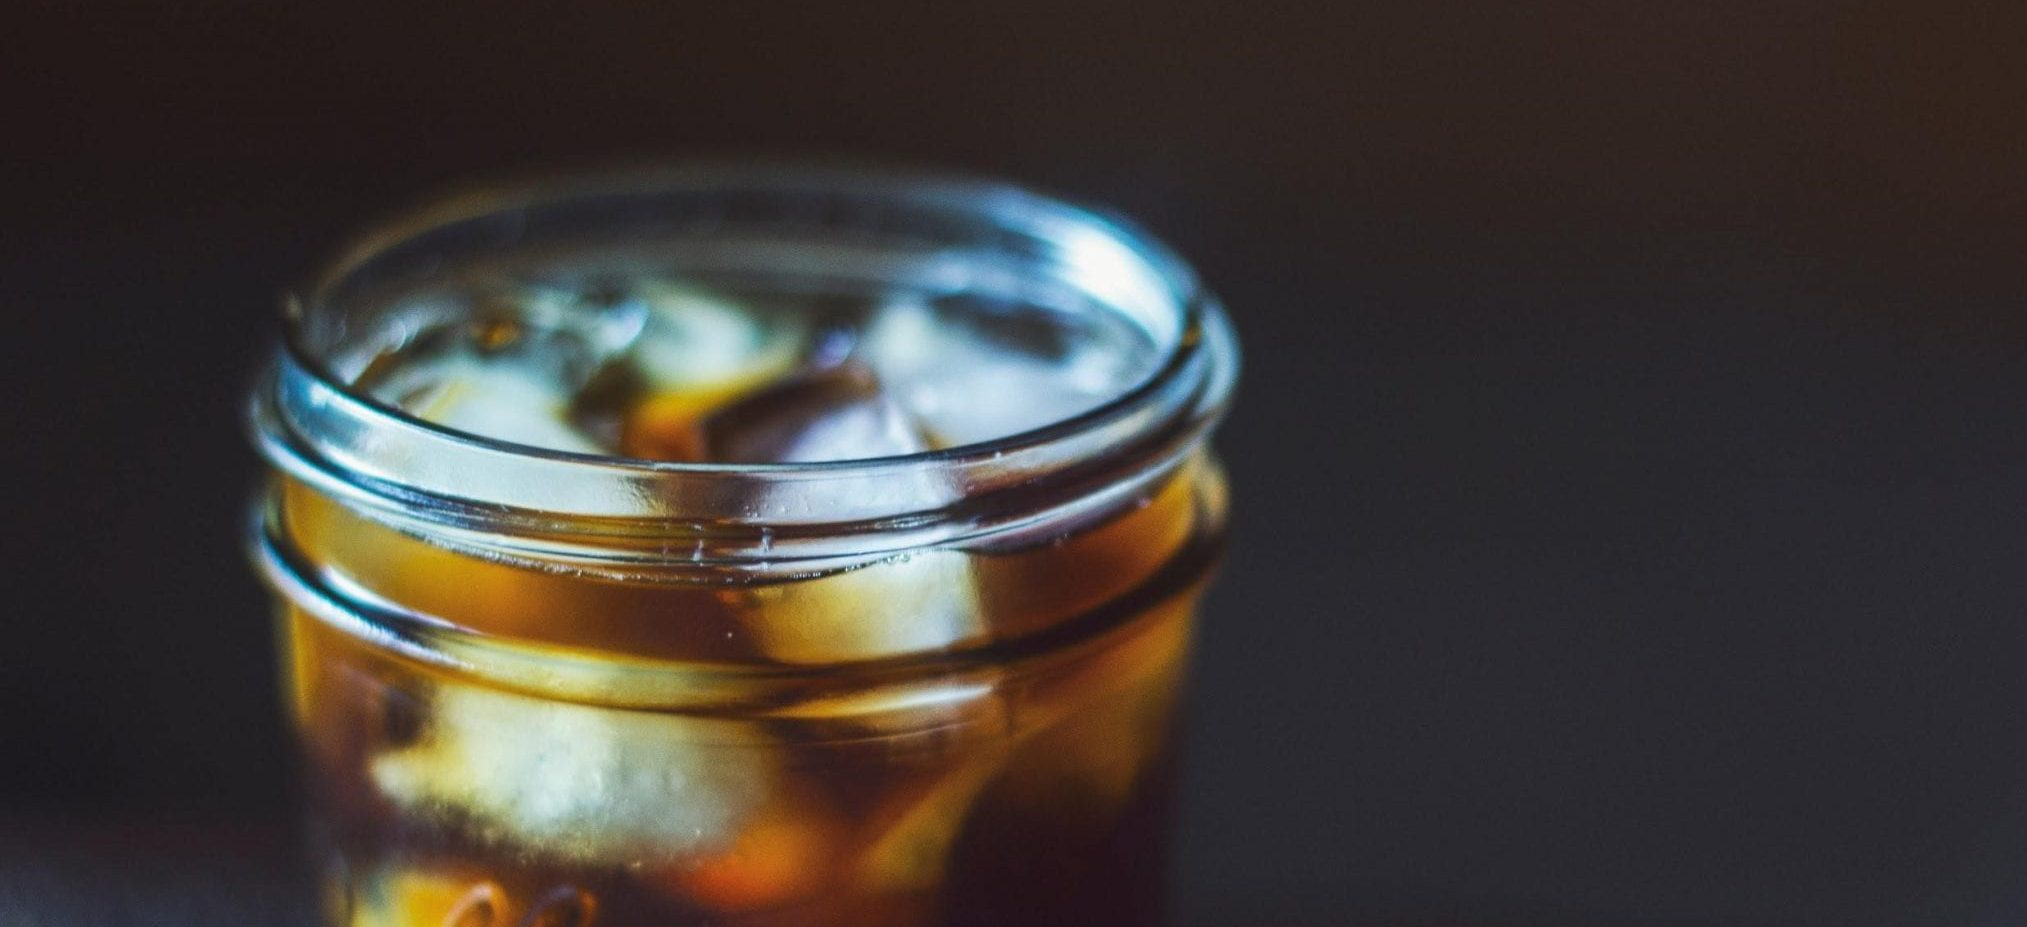 Glass of iced coffee on a black background